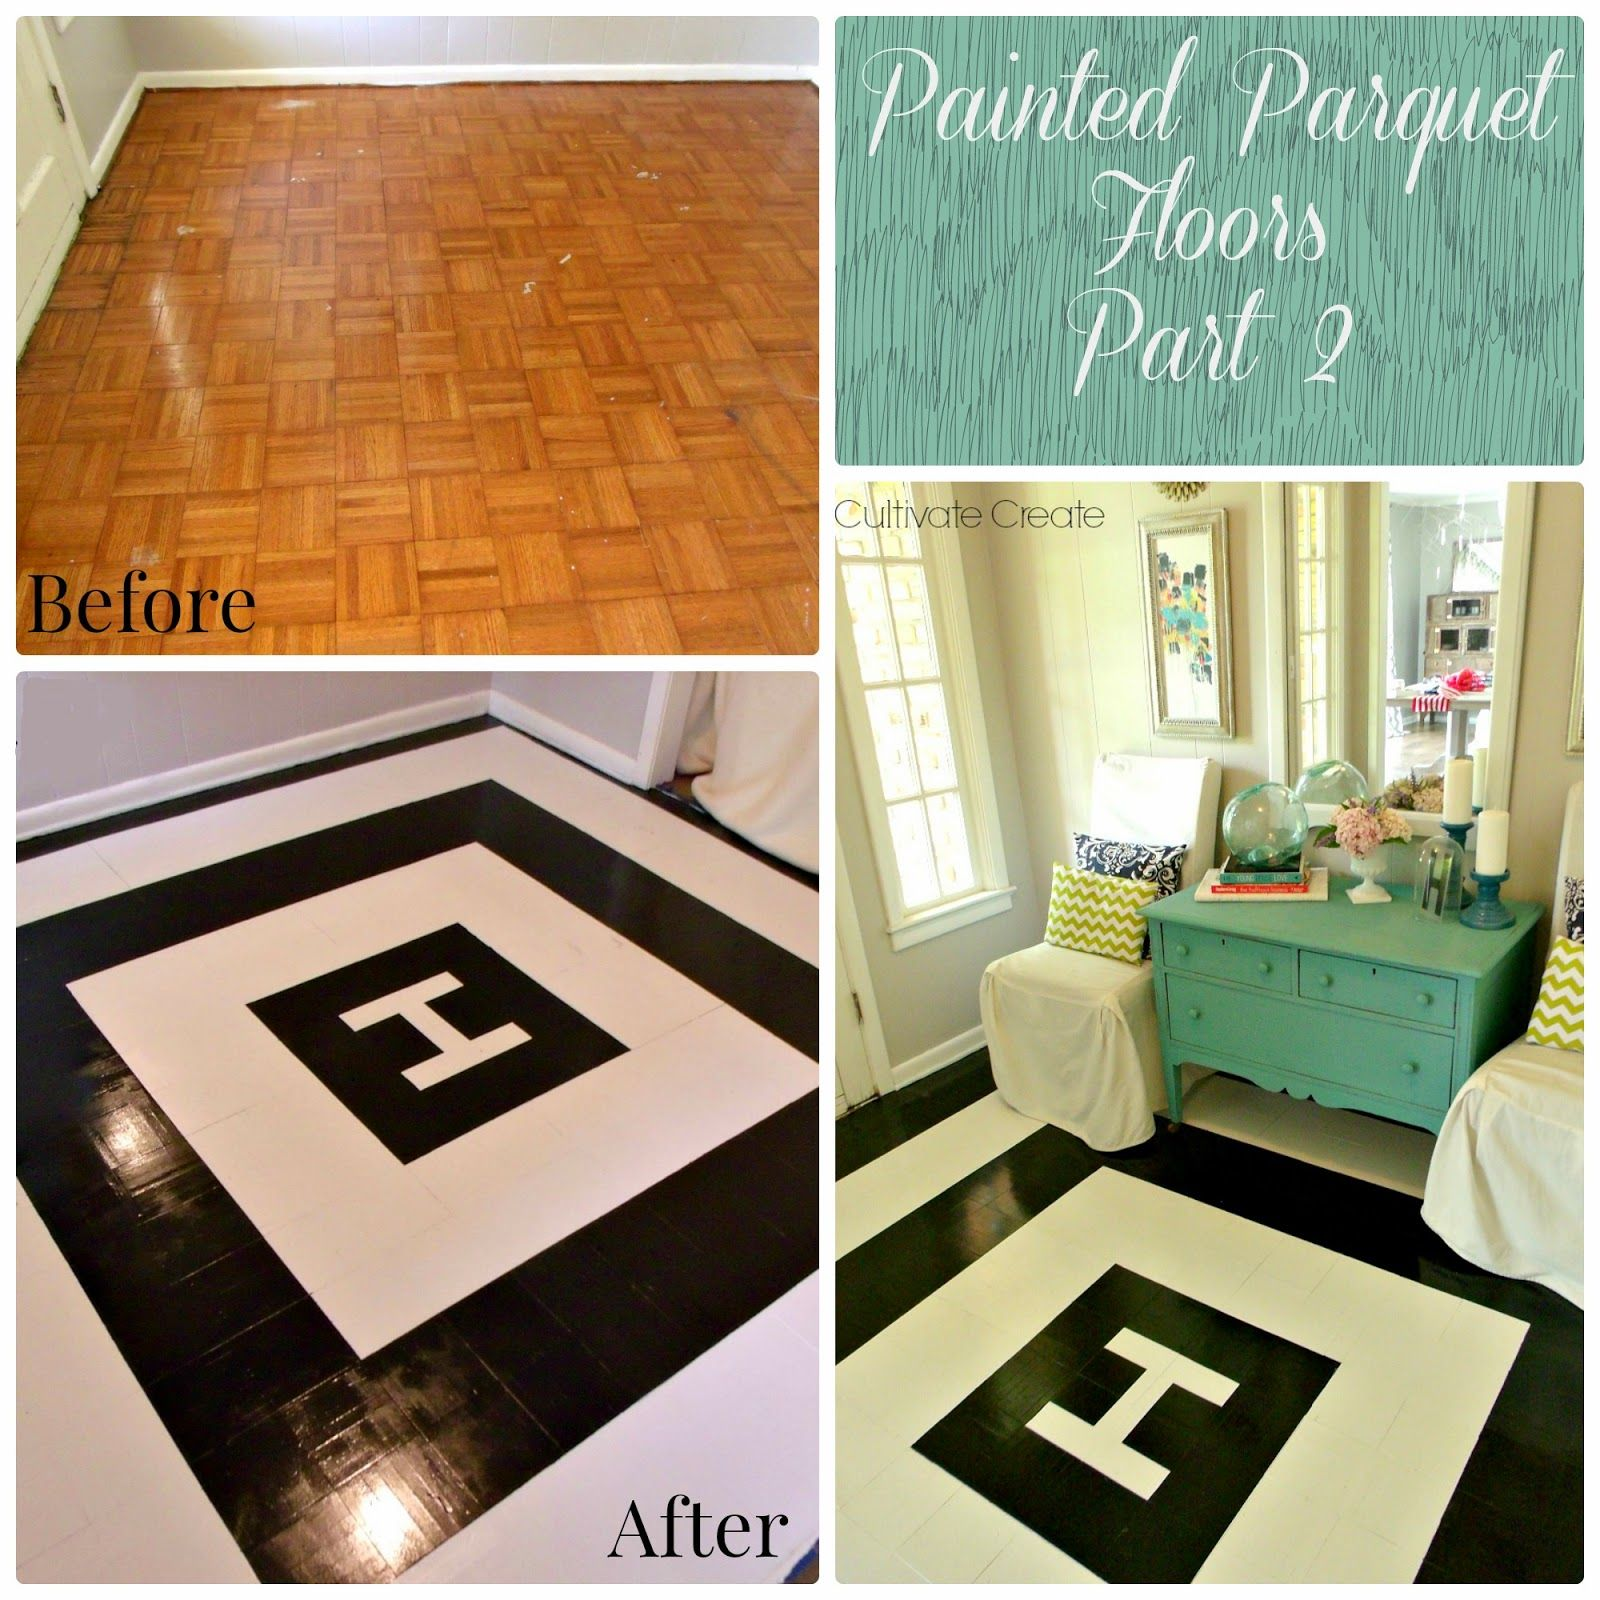 Diy painted parquet floor again not feeling the design that she but i do appreciate the how to on painting outdated parquet flooring for cheap dailygadgetfo Gallery